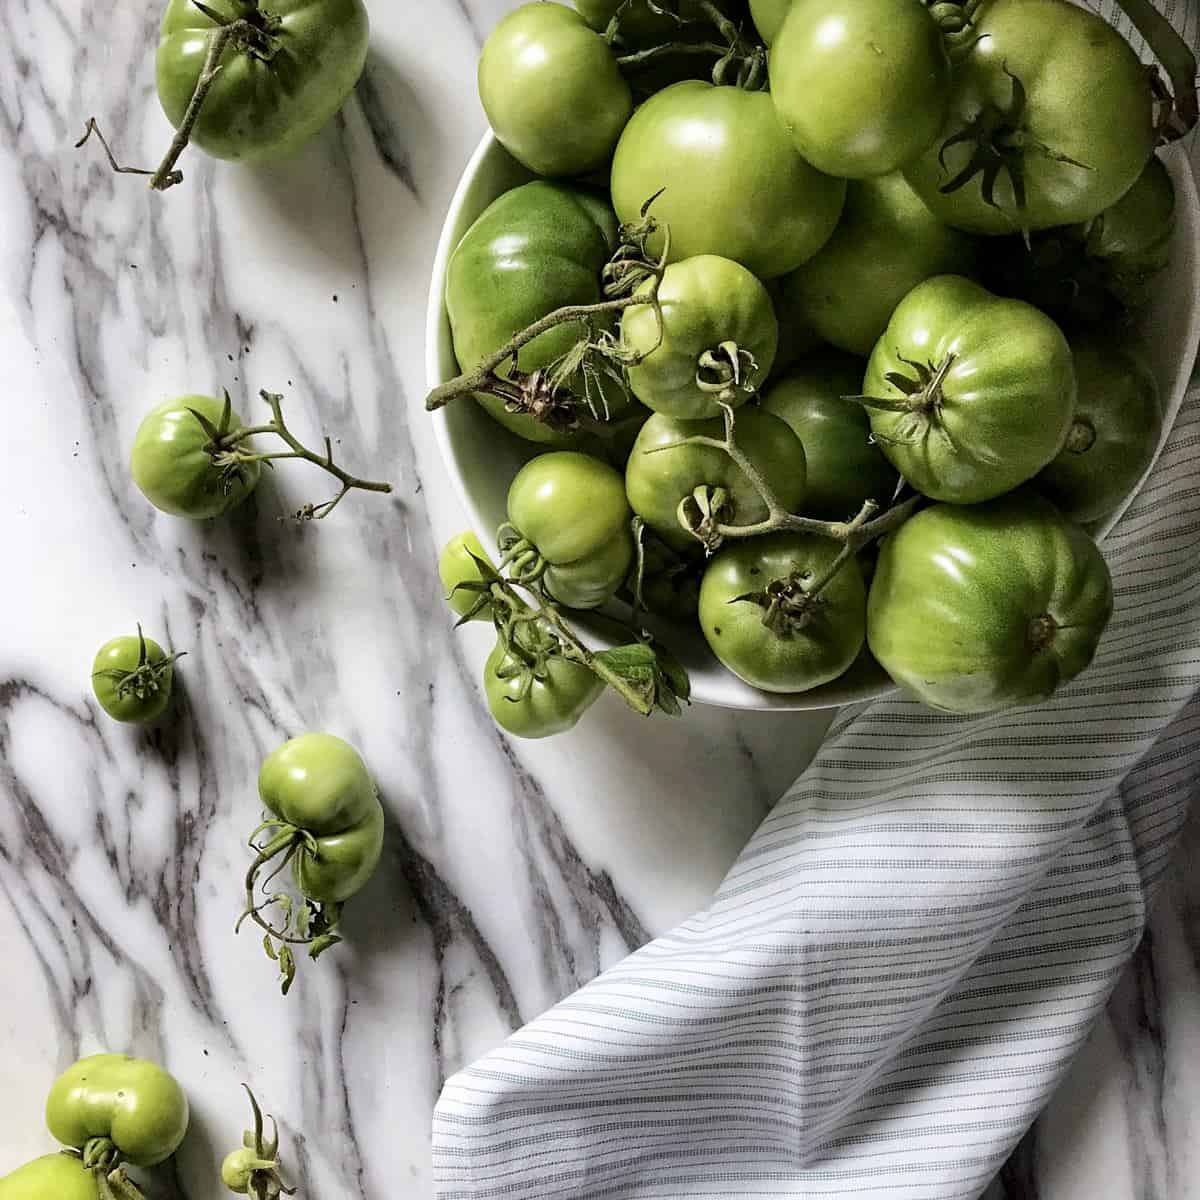 Green tomatoes in a bowl and on a counter.